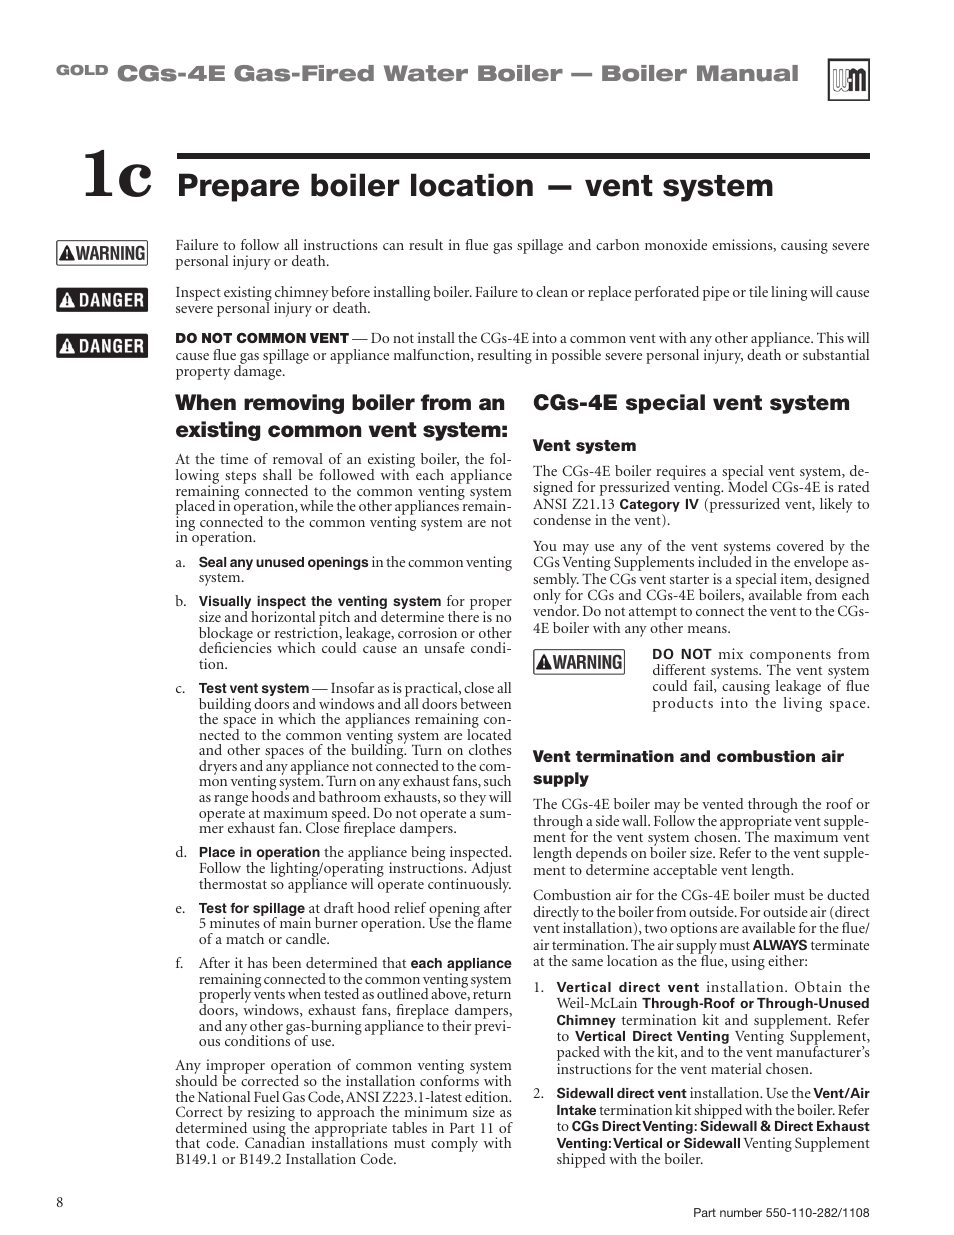 Prepare boiler location — vent system, Cgs-4e gas-fired water boiler ...